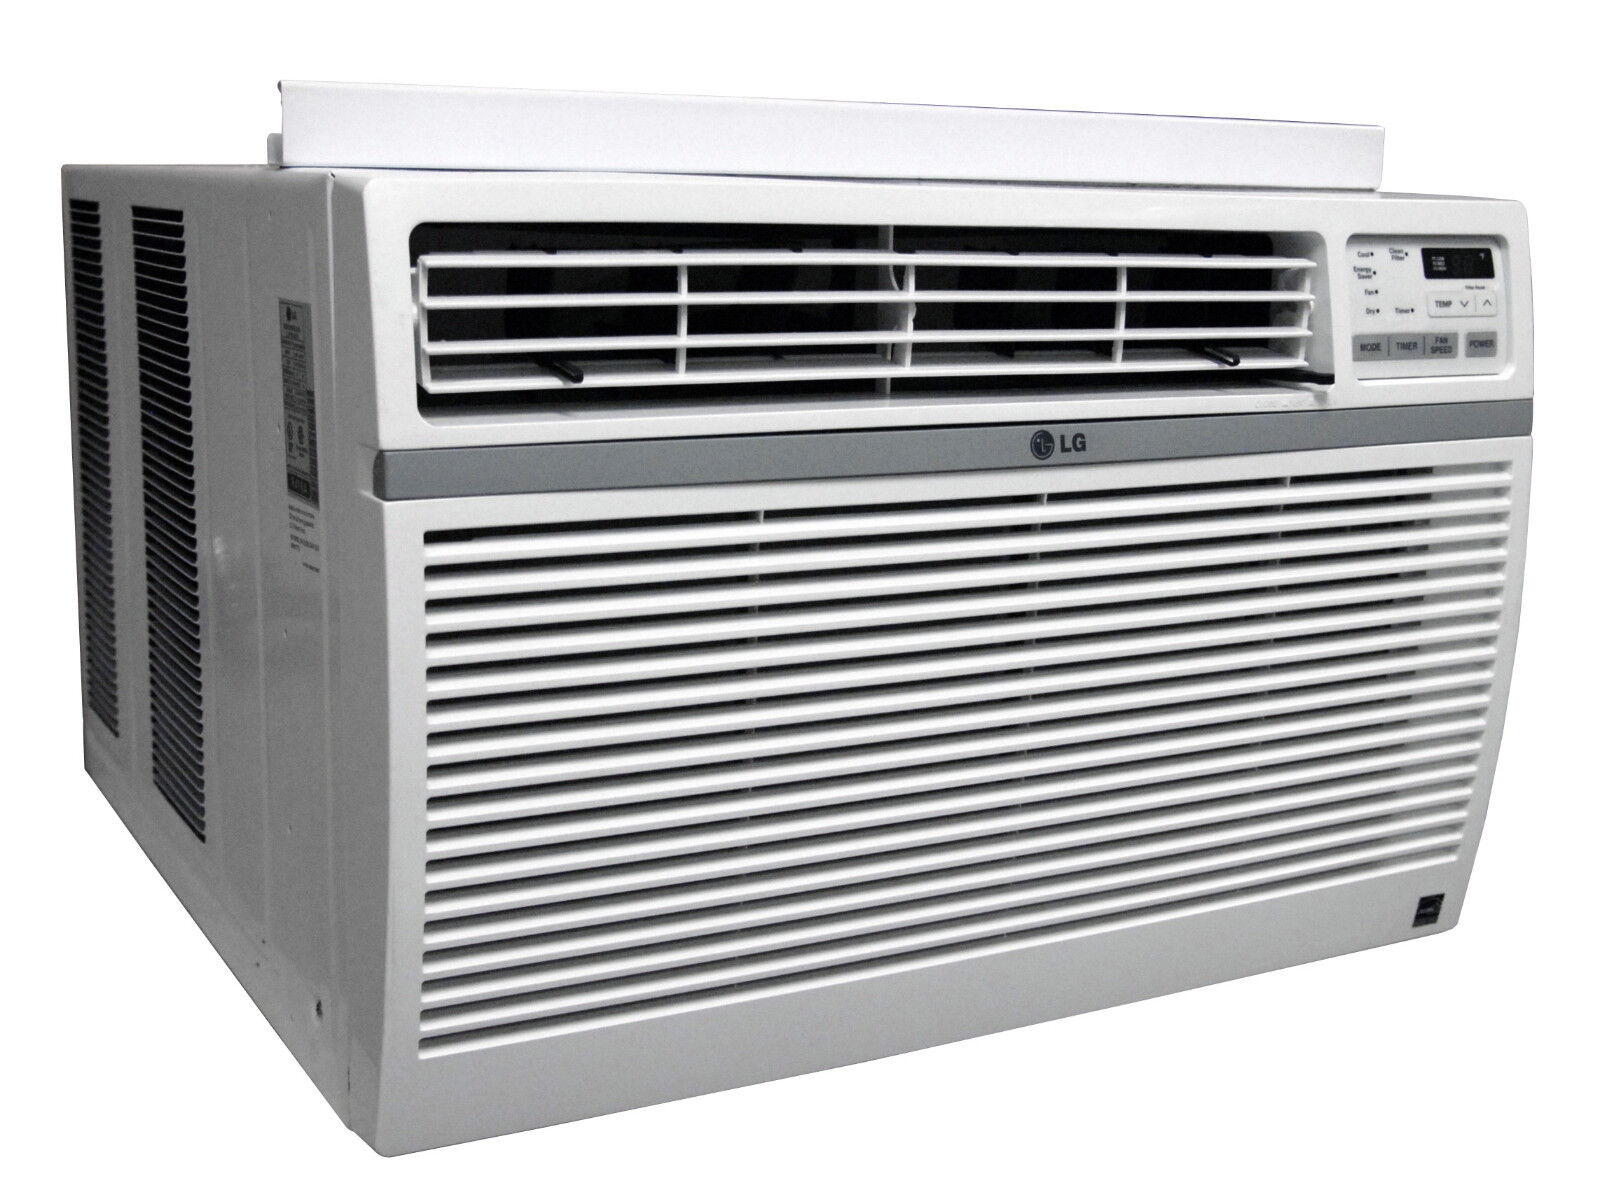 19 air conditioner wide window lg electronics 12 000 btu for 12000 btu window air conditioner 220v